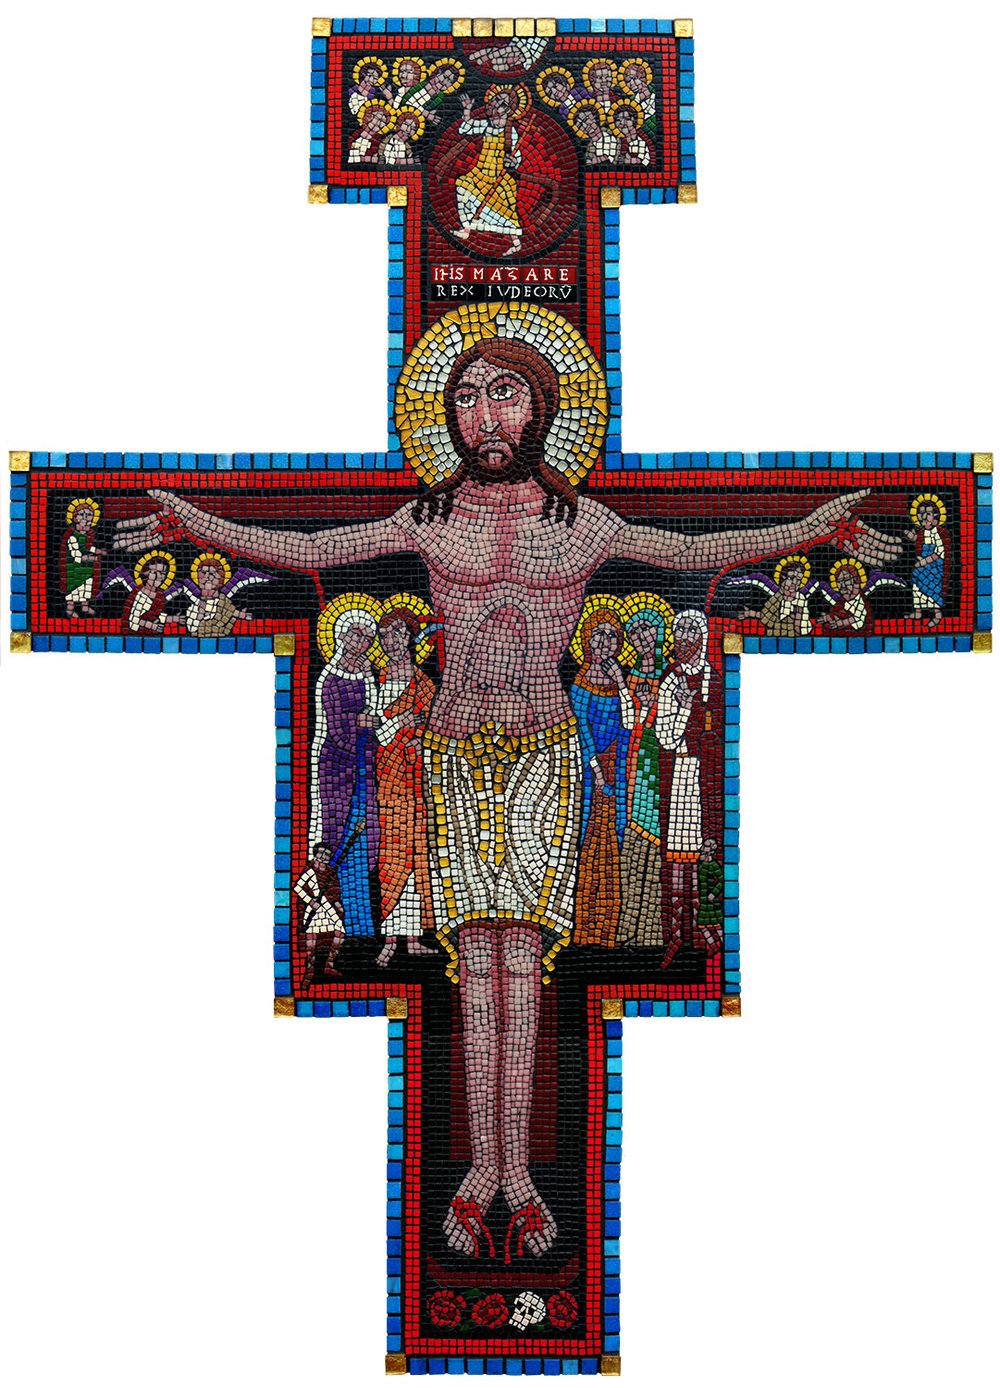 My final mosaic reproduction of the San Damiano Cross.